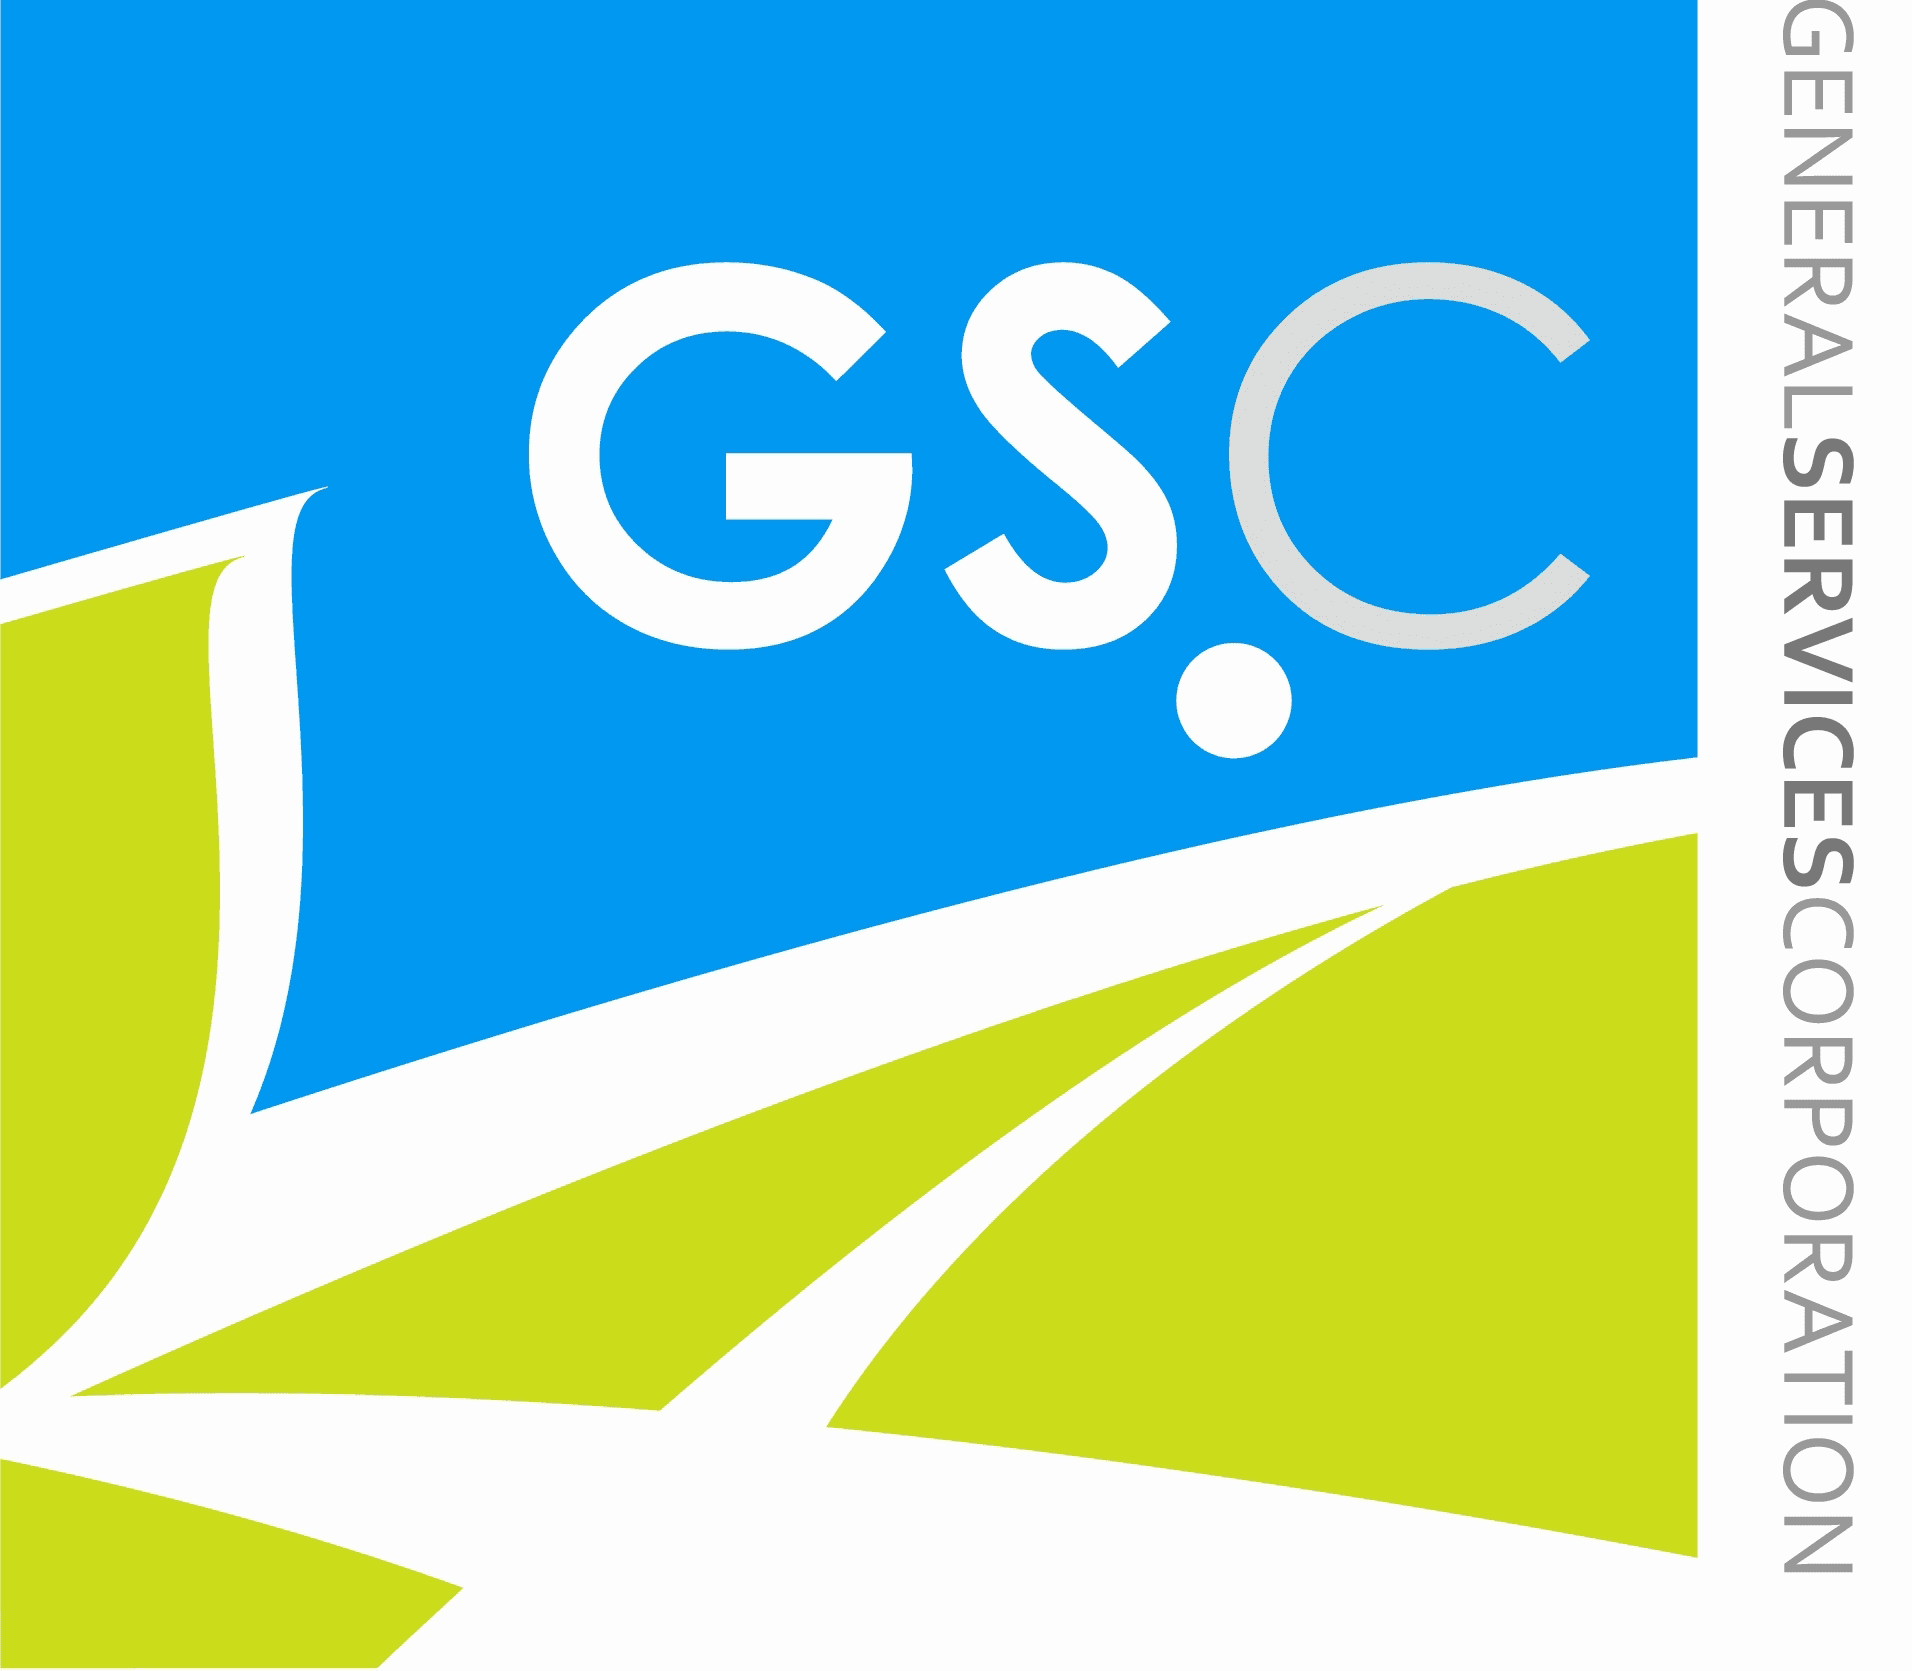 General Services Corporation